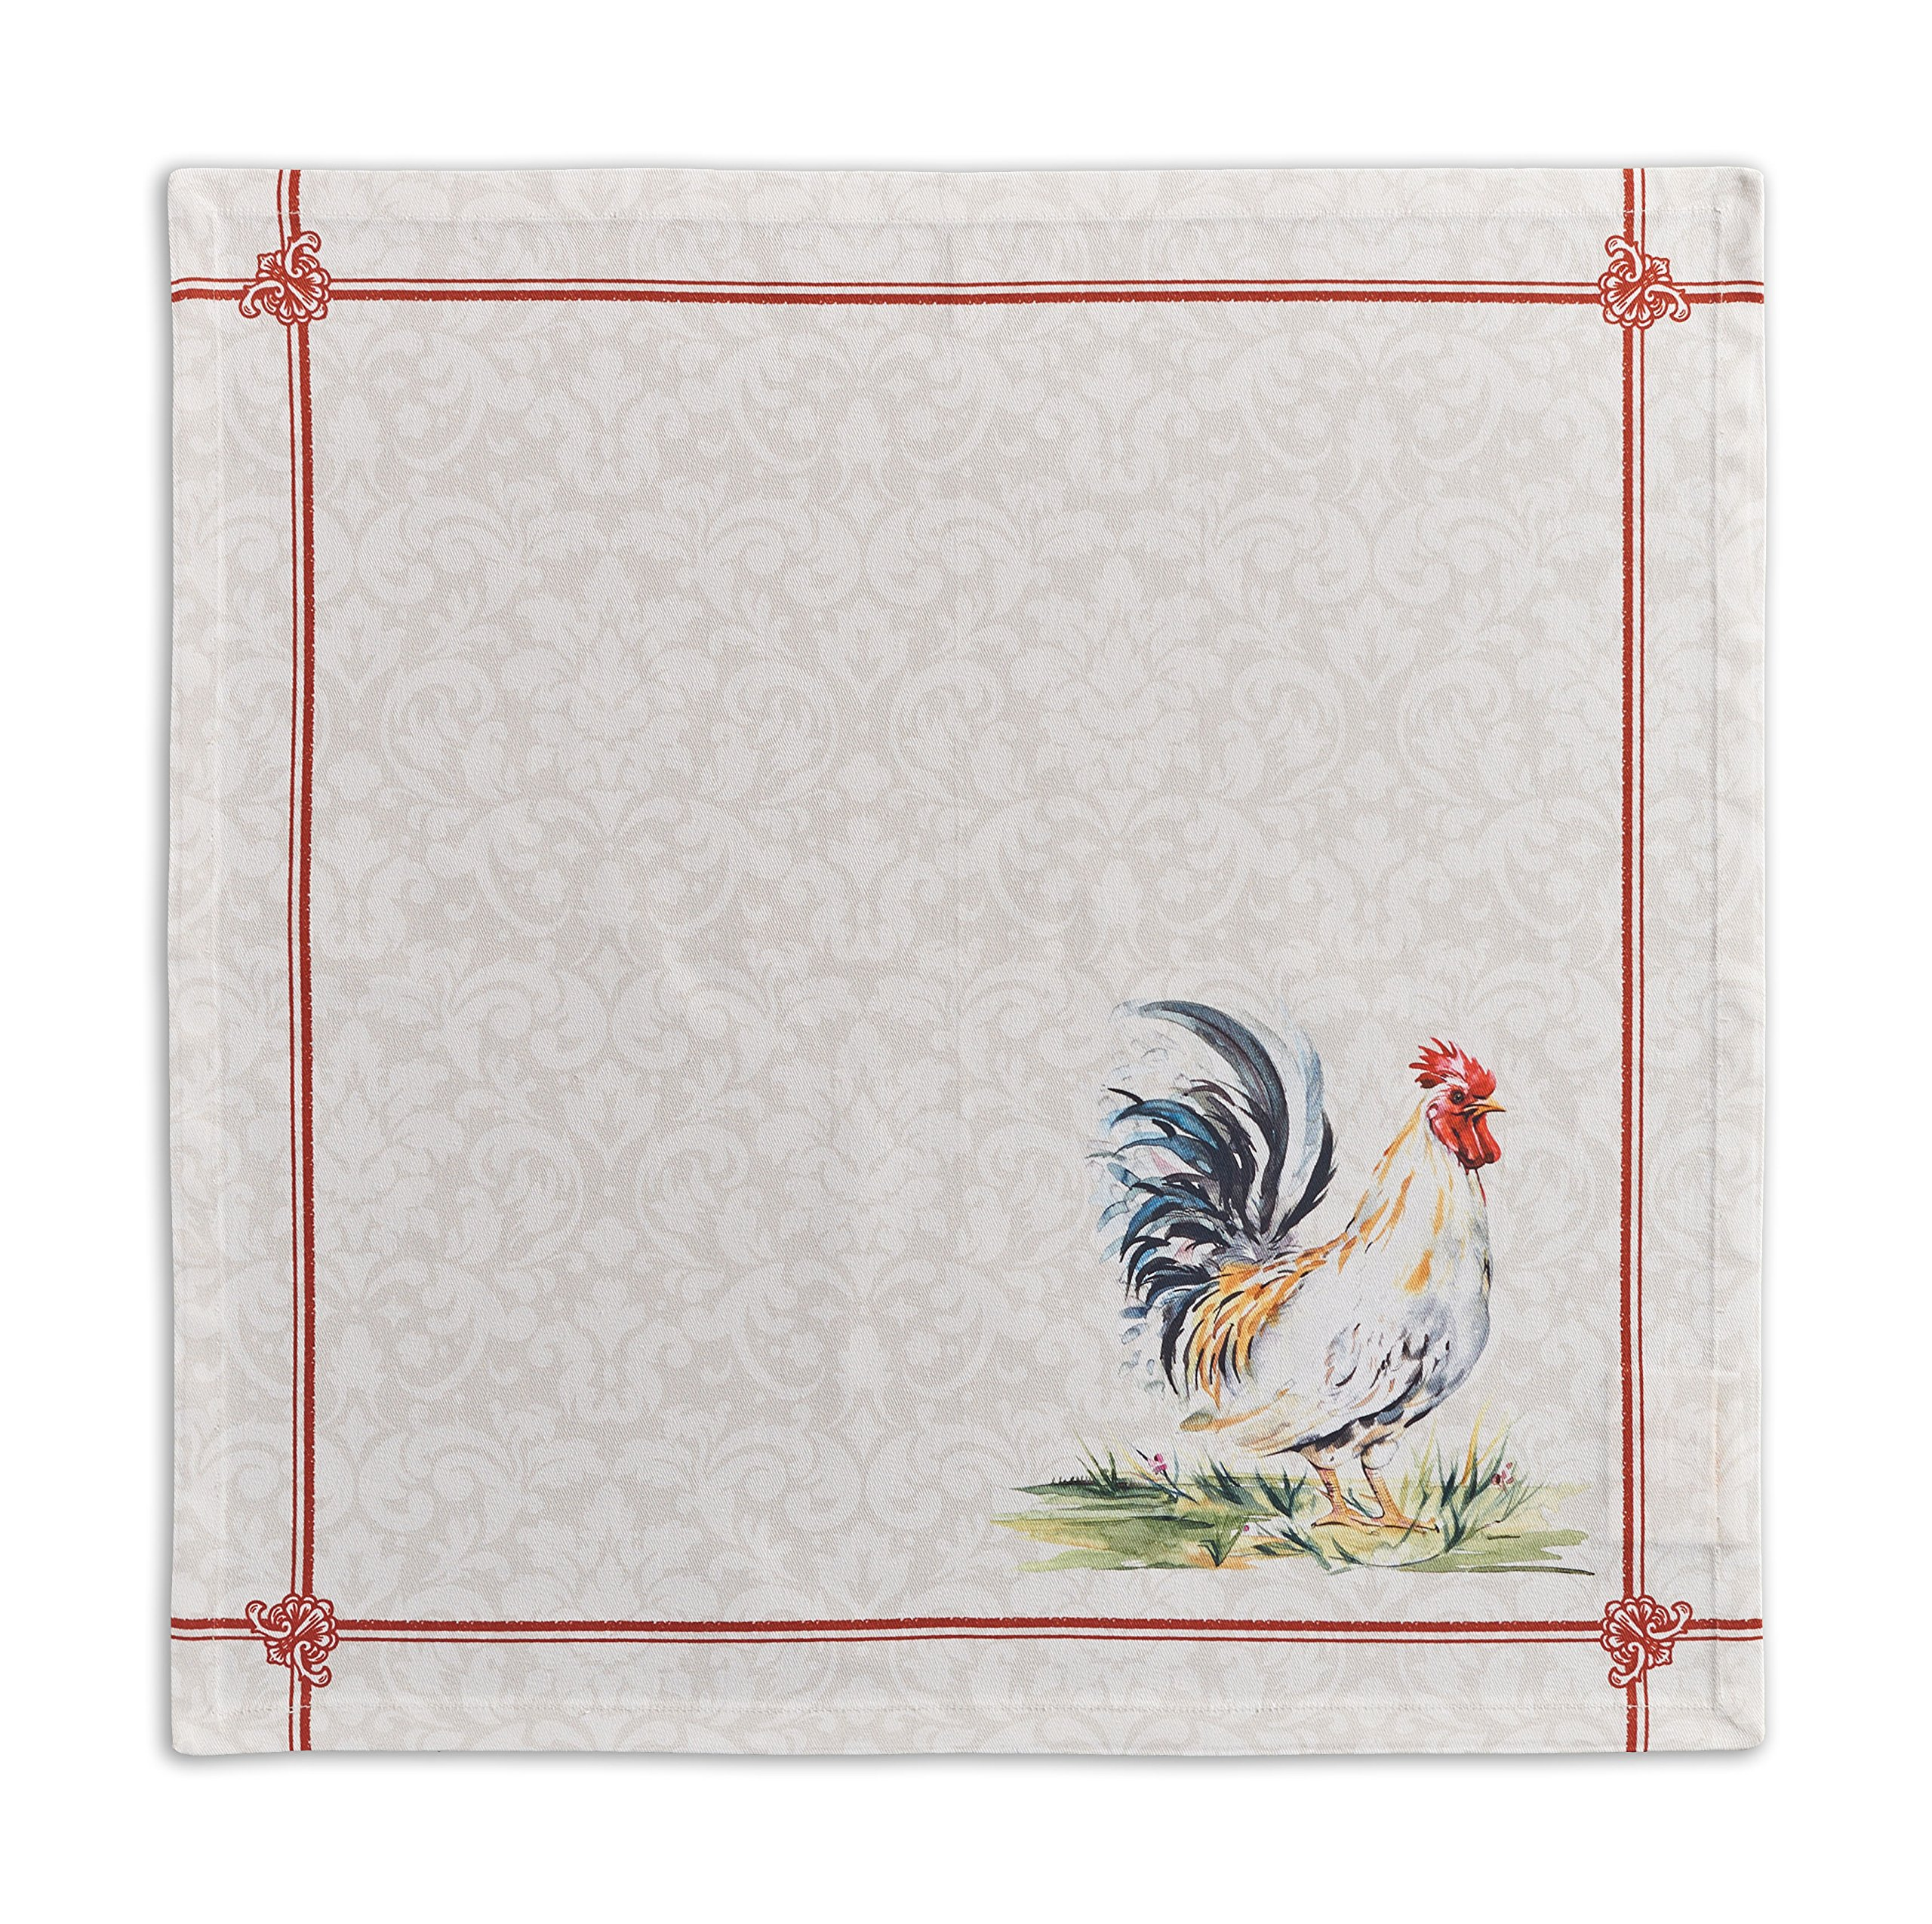 Maison d' Hermine Campagne 100% Cotton Set of 4 Napkins, 20 - inch by 20 - inch.